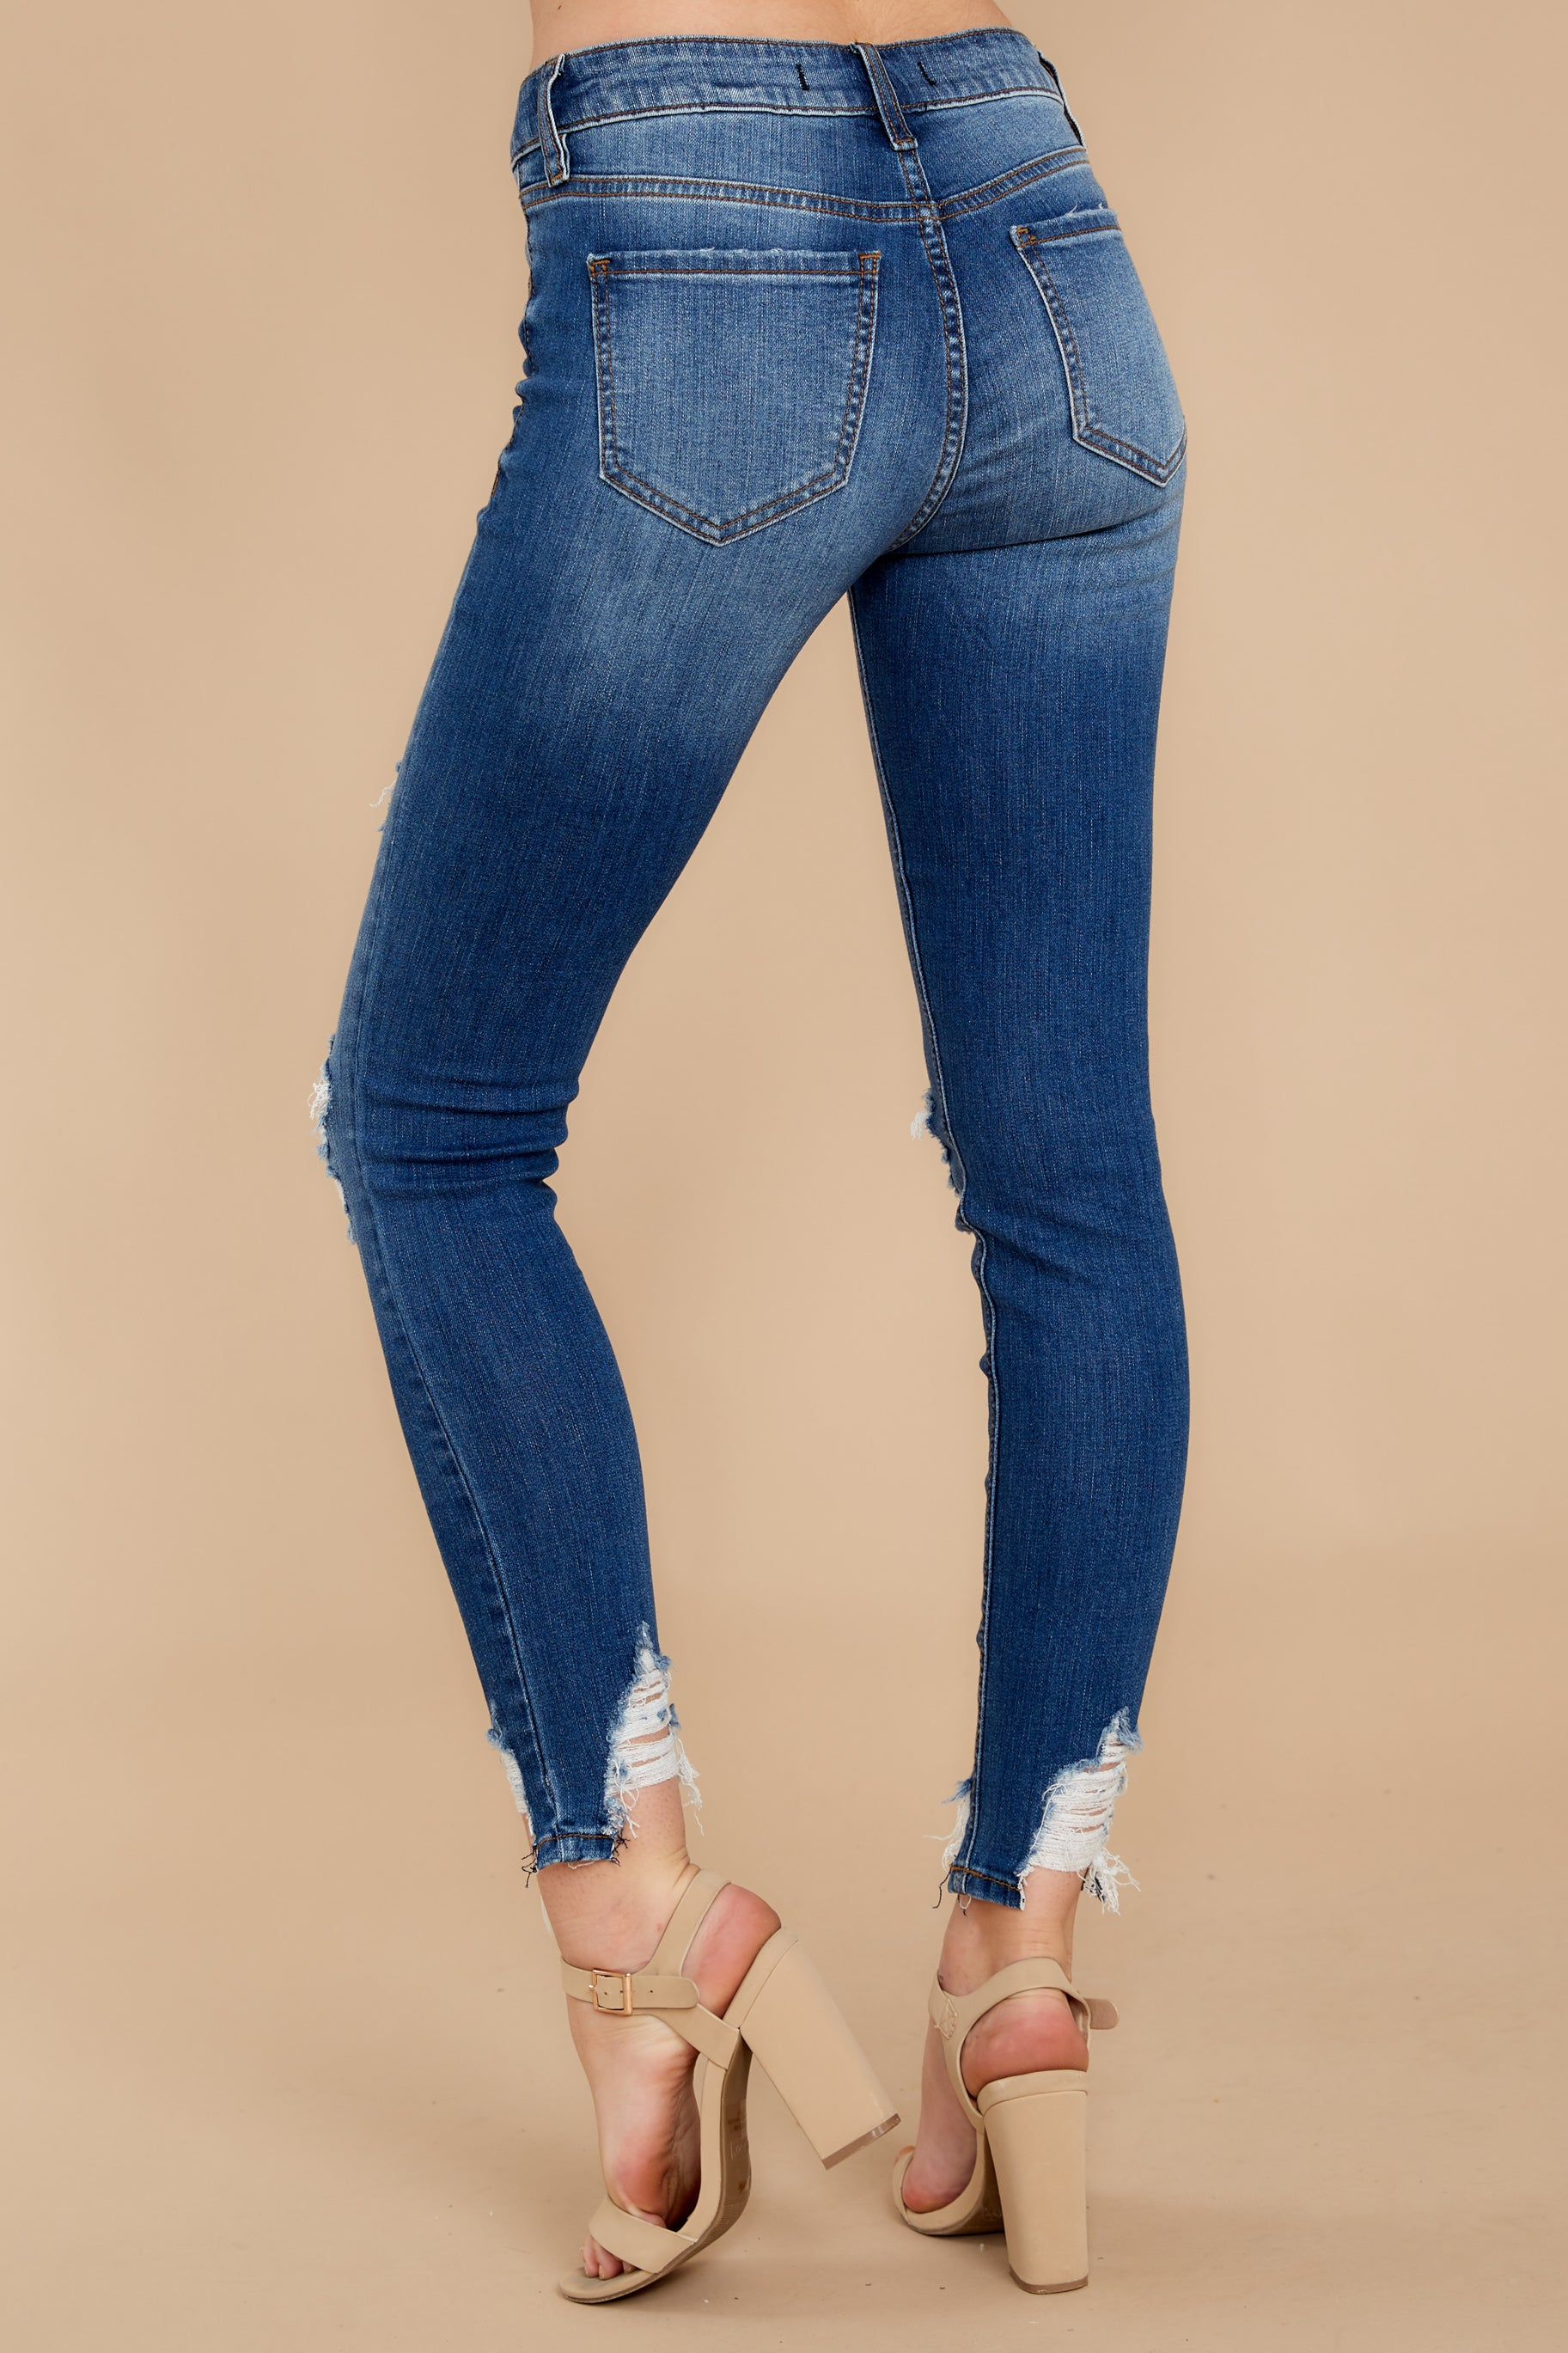 3 Not Going Back Medium Wash Distressed Skinny Jeans at reddress.com